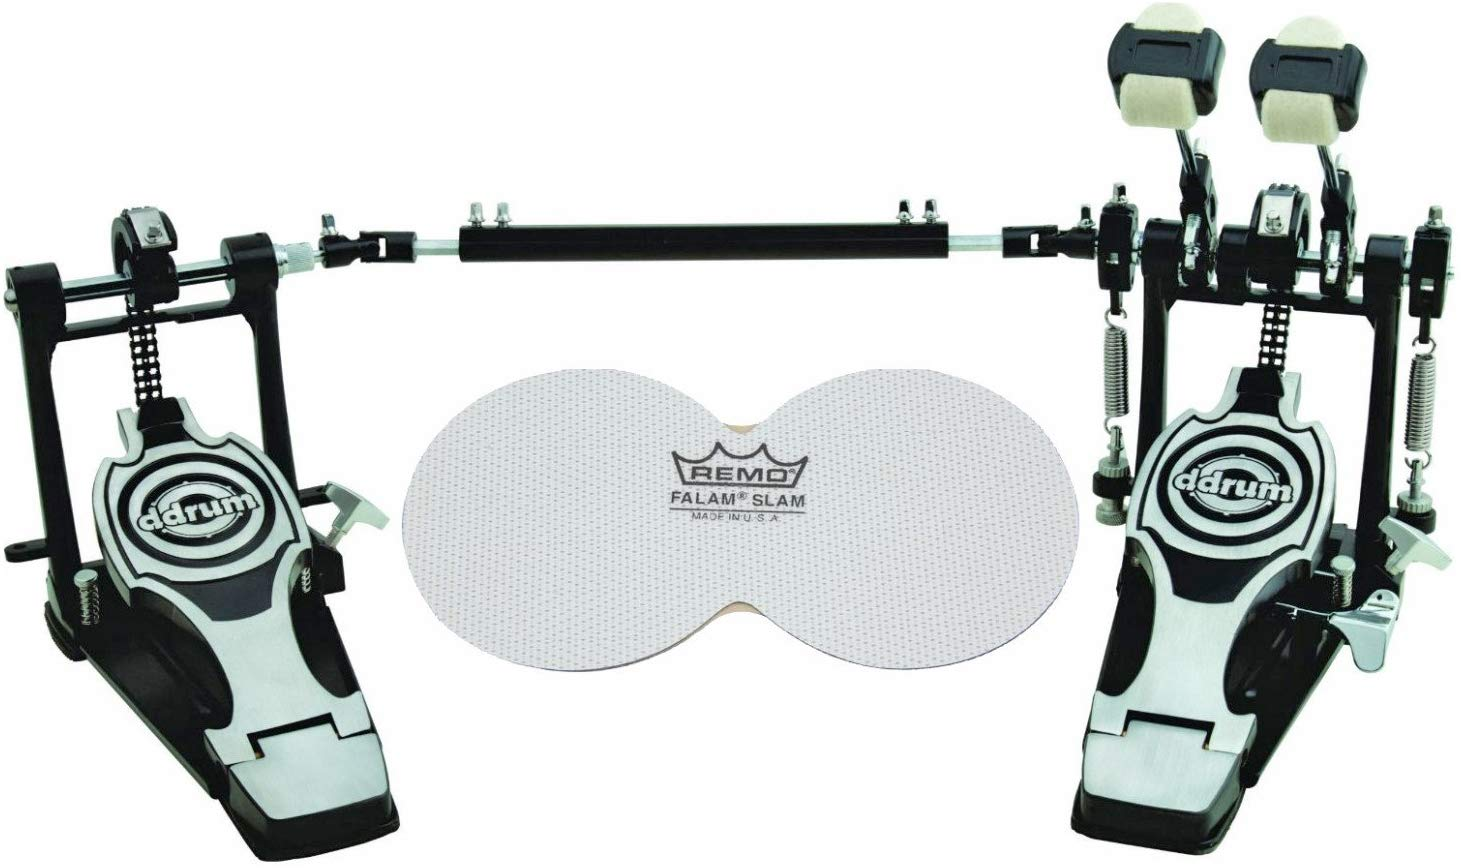 5 Best Double Bass Pedals [Reviews & Buying Guide] 4